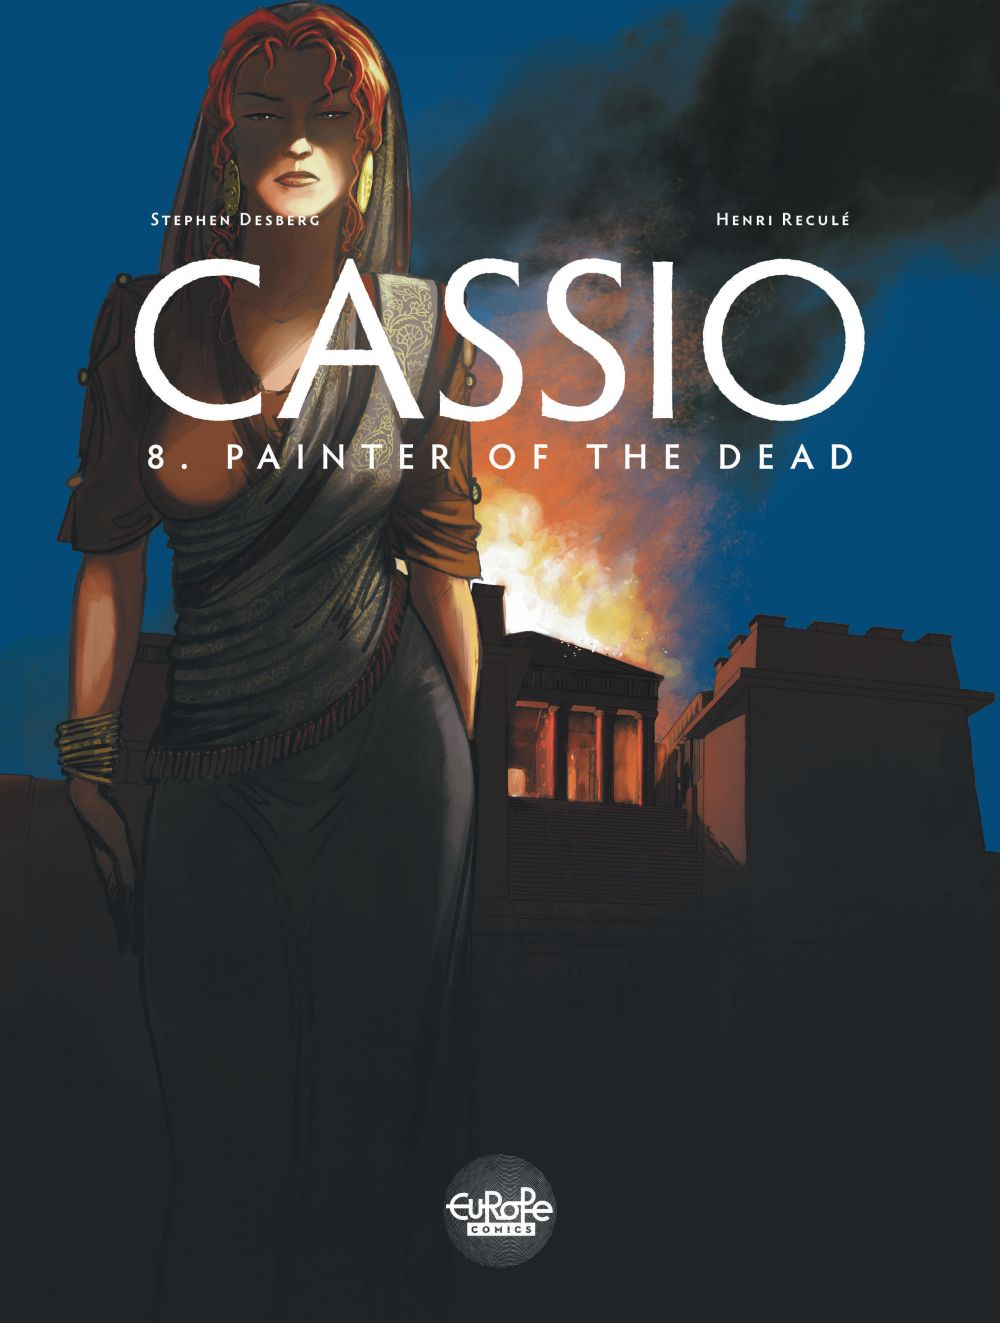 Cassio 8. Painter of the Dead